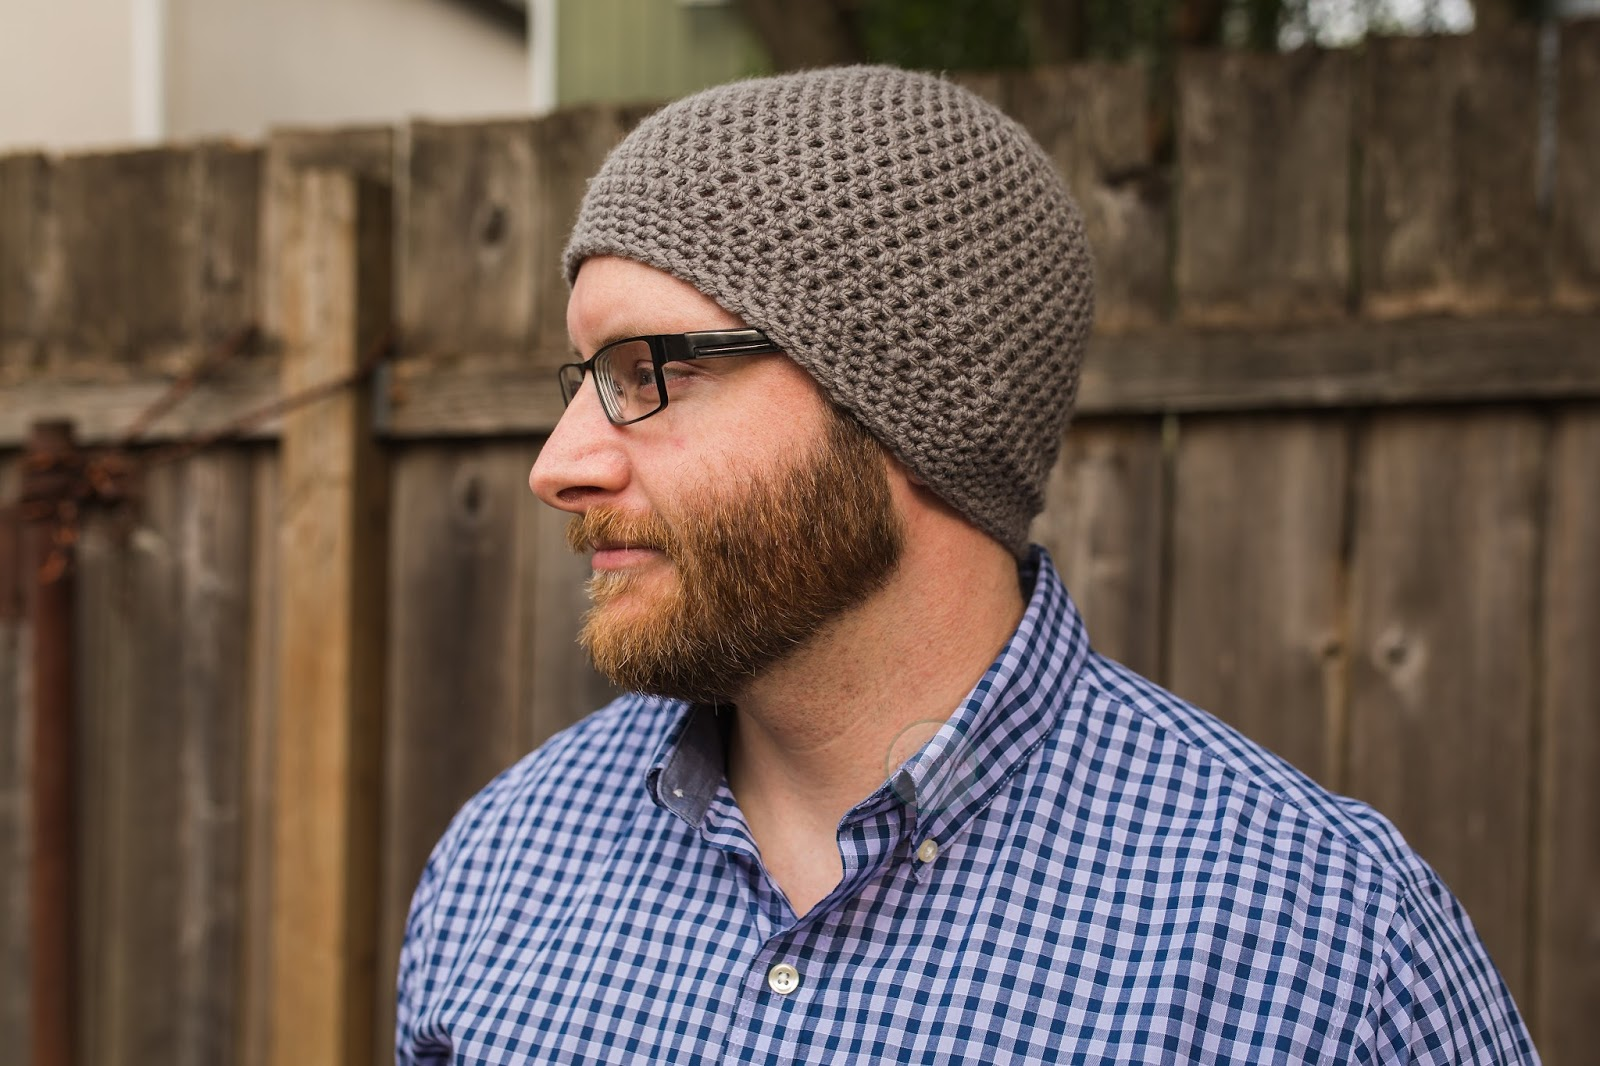 The Cole, Men's Classic Crochet Fitted Beanie, Men's Winter Hat, Men's Crochet Beanie, Men's Crochet Hat, Knit Hat, Christmas, Father's Day